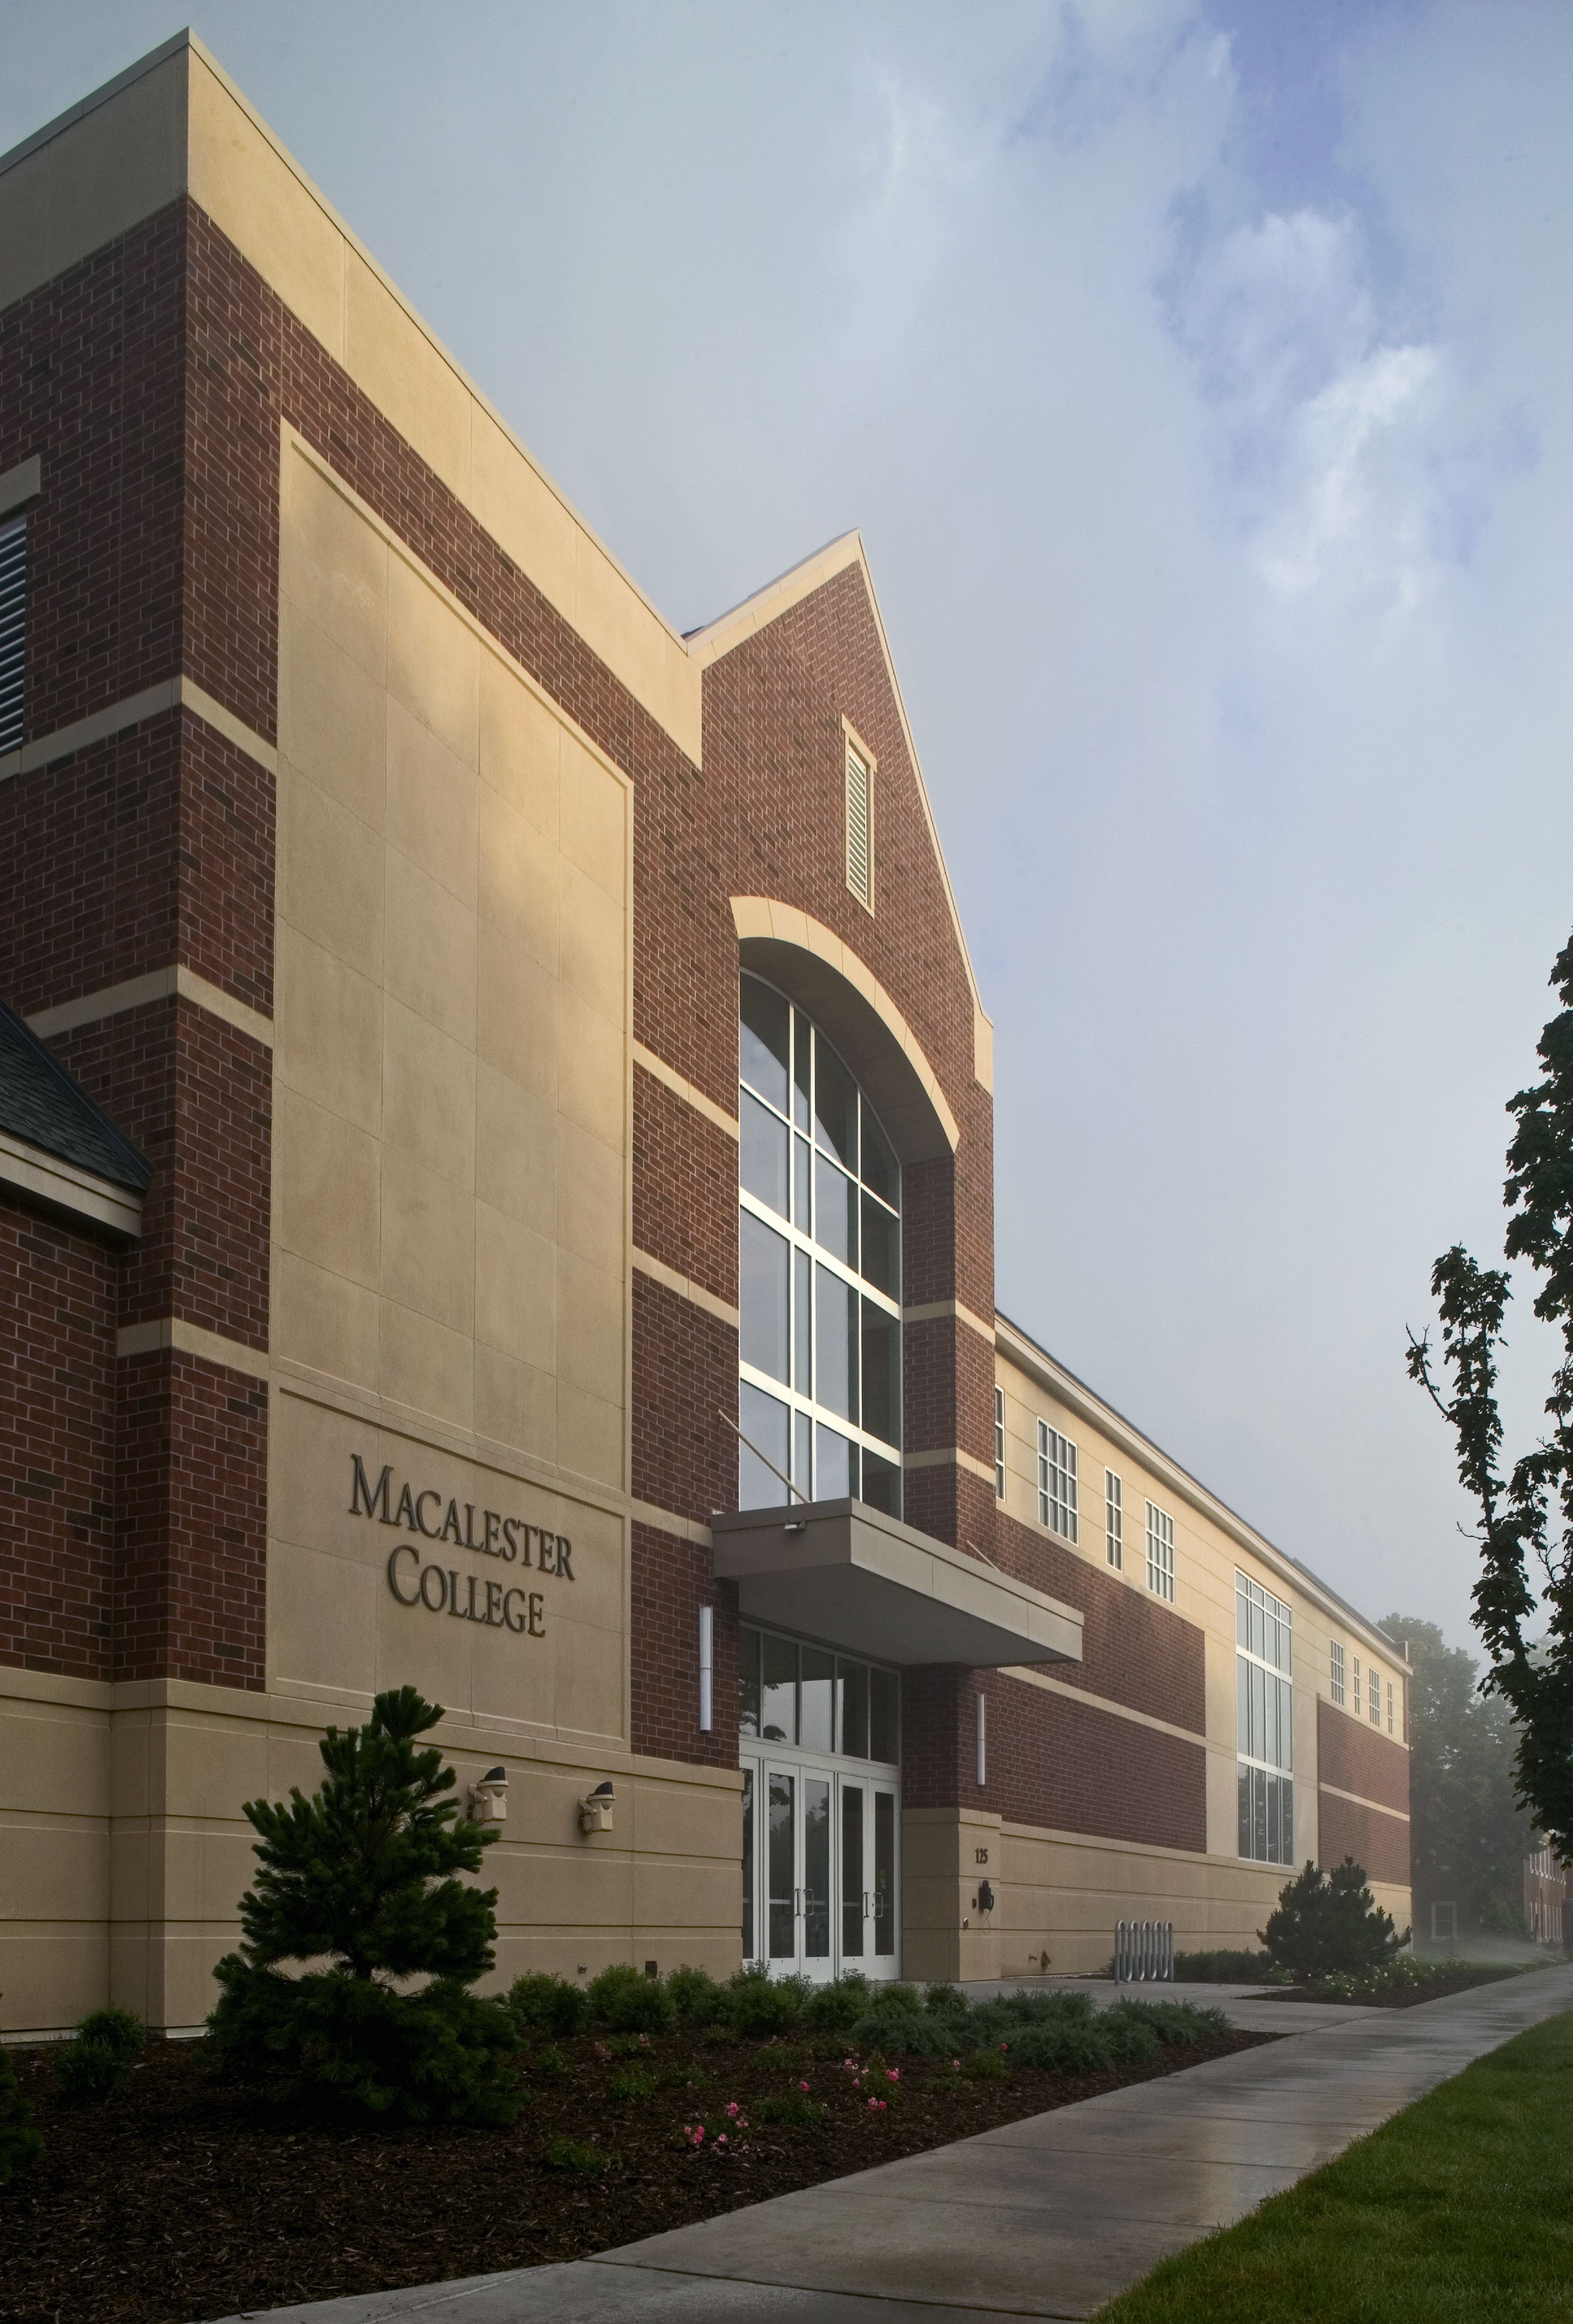 Leonard Center Athletic and Recreational Facility – Macalester College